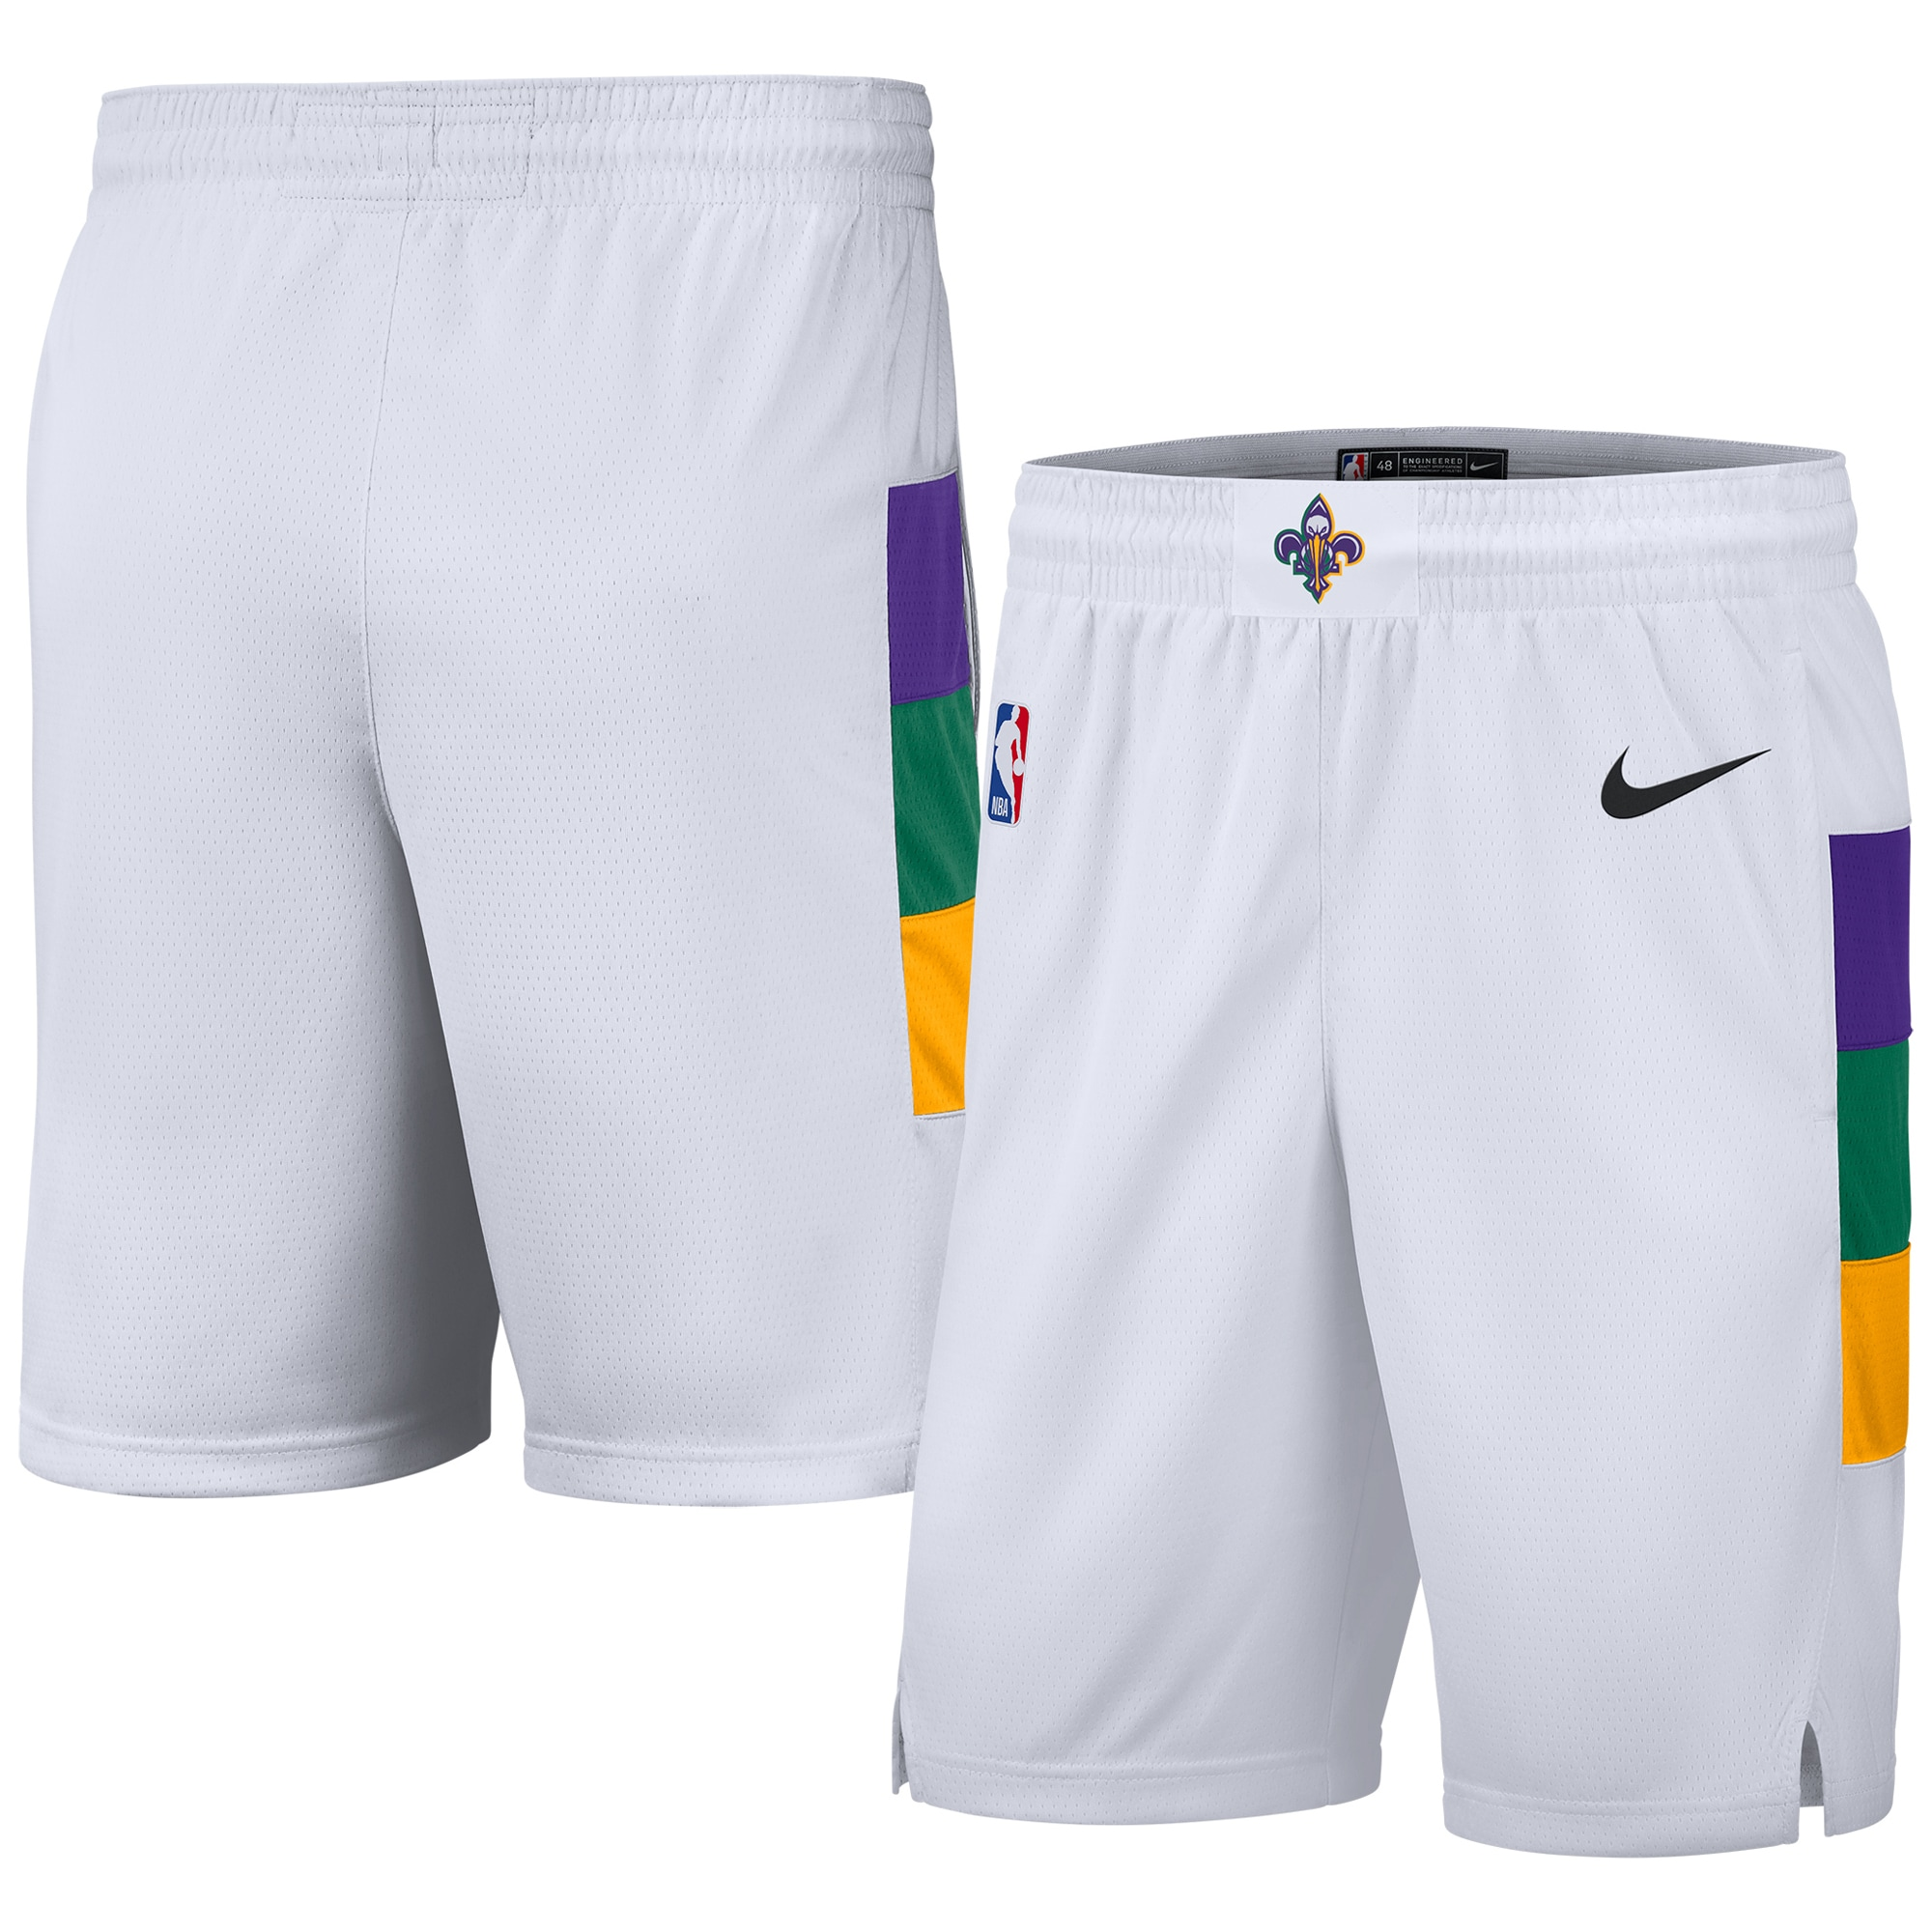 New Orleans Pelicans Nike Youth 2019/20 City Edition Swingman Shorts - White